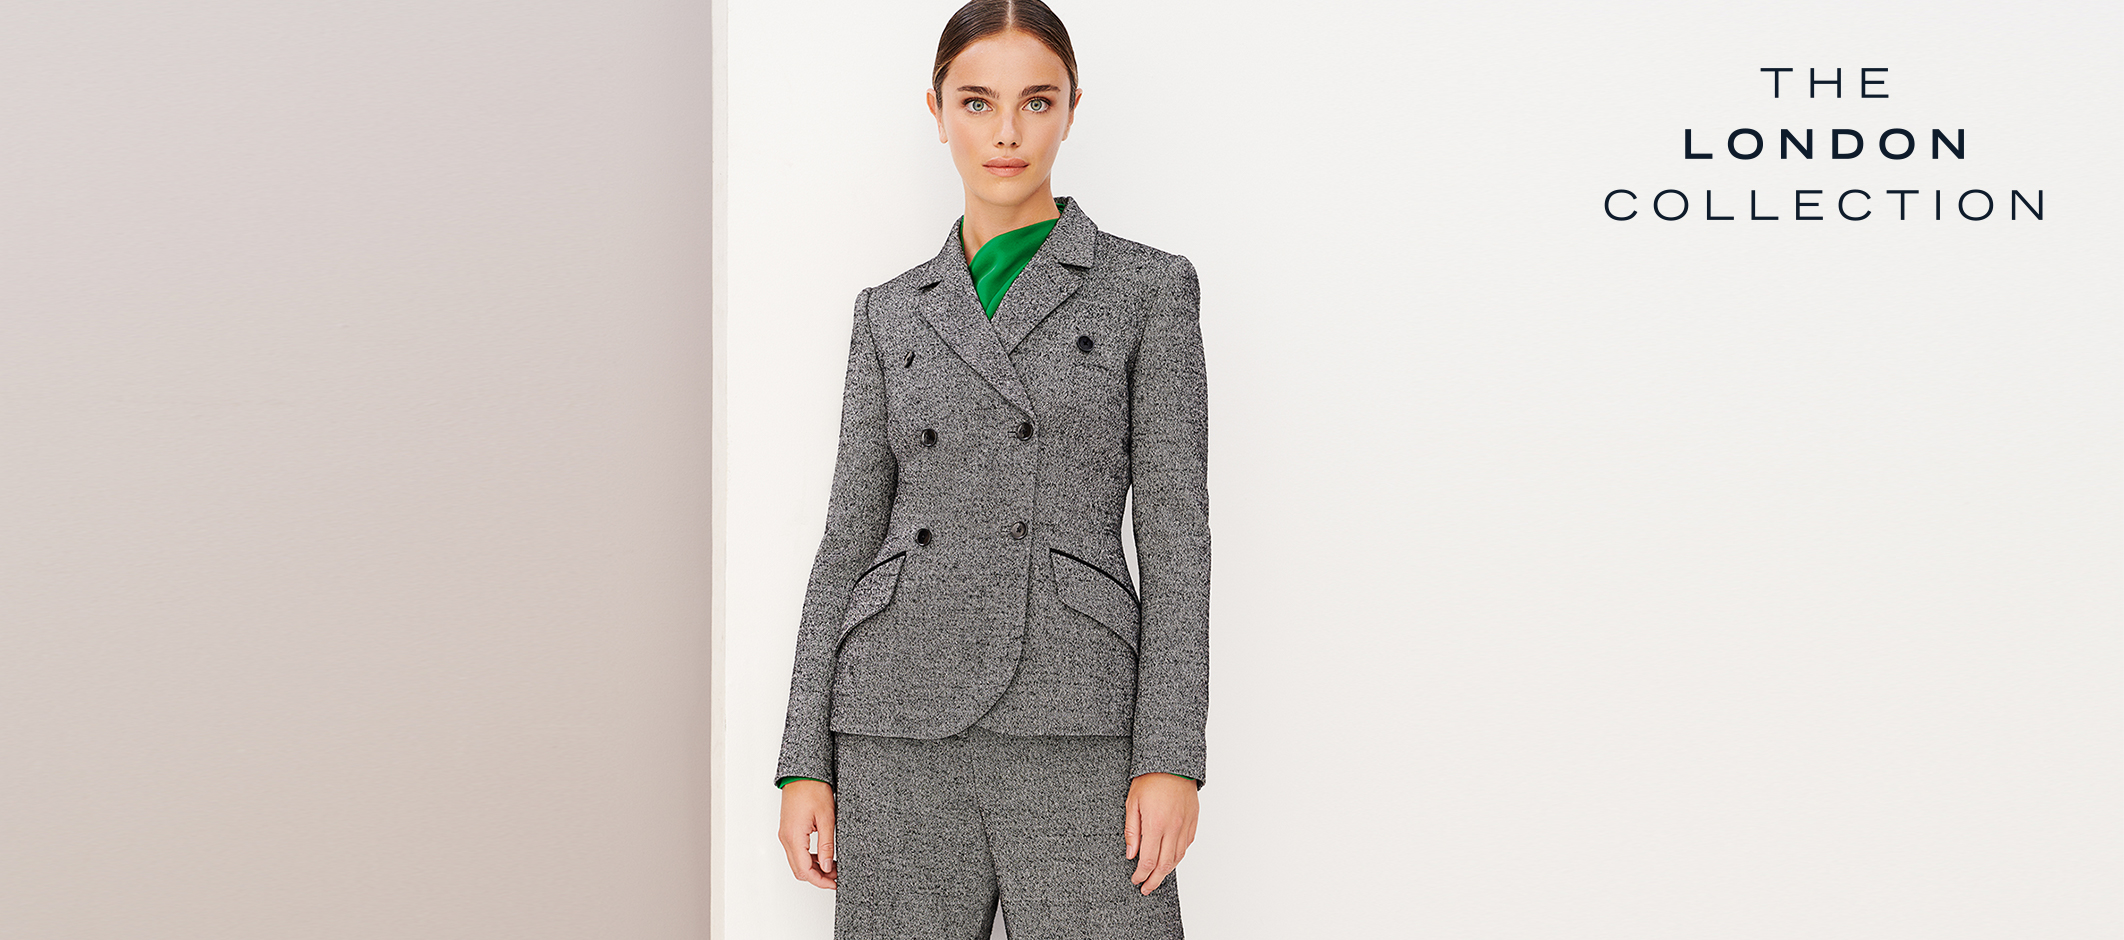 London Collection Premium Grey Suit